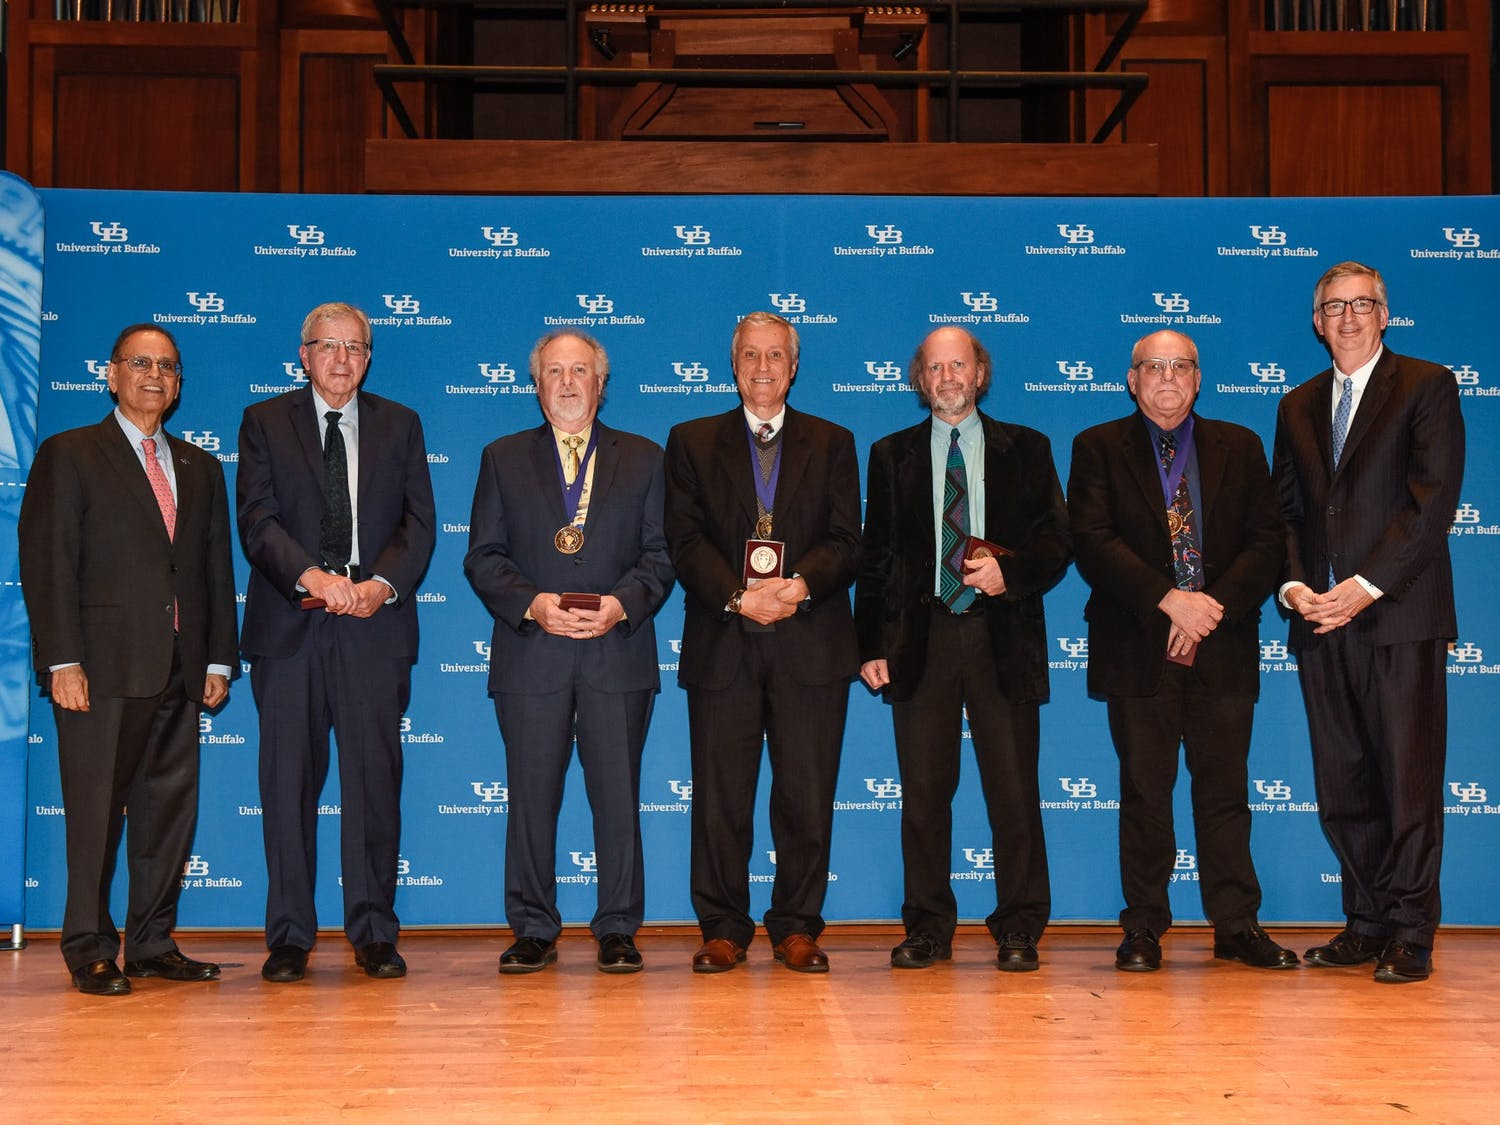 Interim Provost A. Scott Weber (far right) and President Satish Tripathi (far left) stand with 2019 SUNY Distinguished Professors.